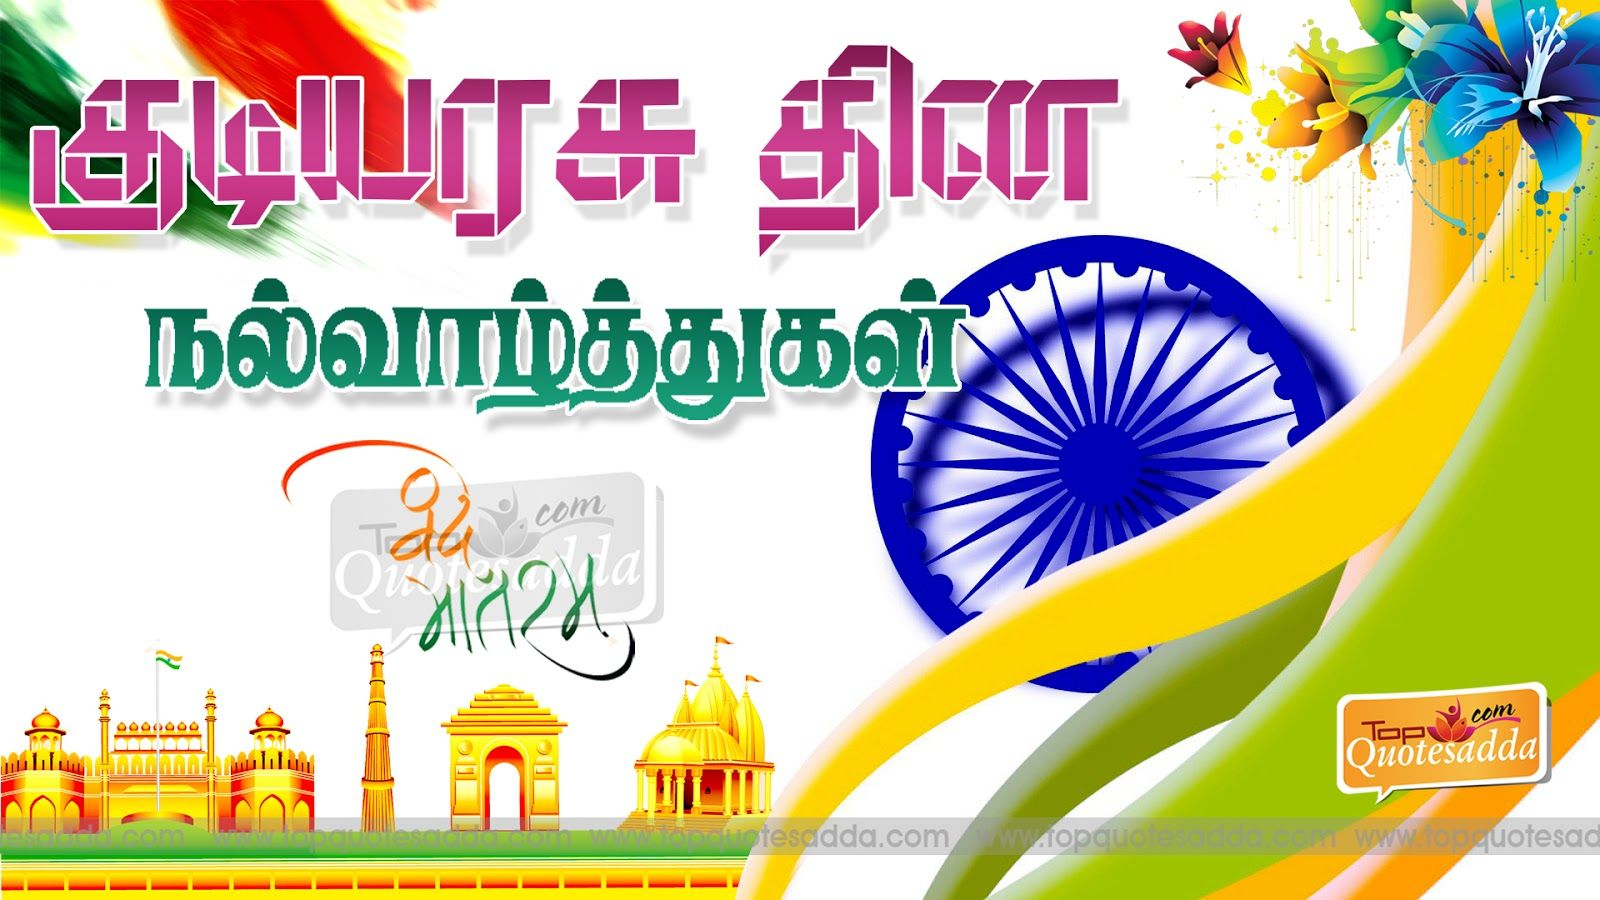 Happy republic day tamil quotes and sayings republic day tamil tamil quotes about independence day tamil kavithai happy independence day india tamil quotes with nice pictures about independence day august independence kristyandbryce Gallery